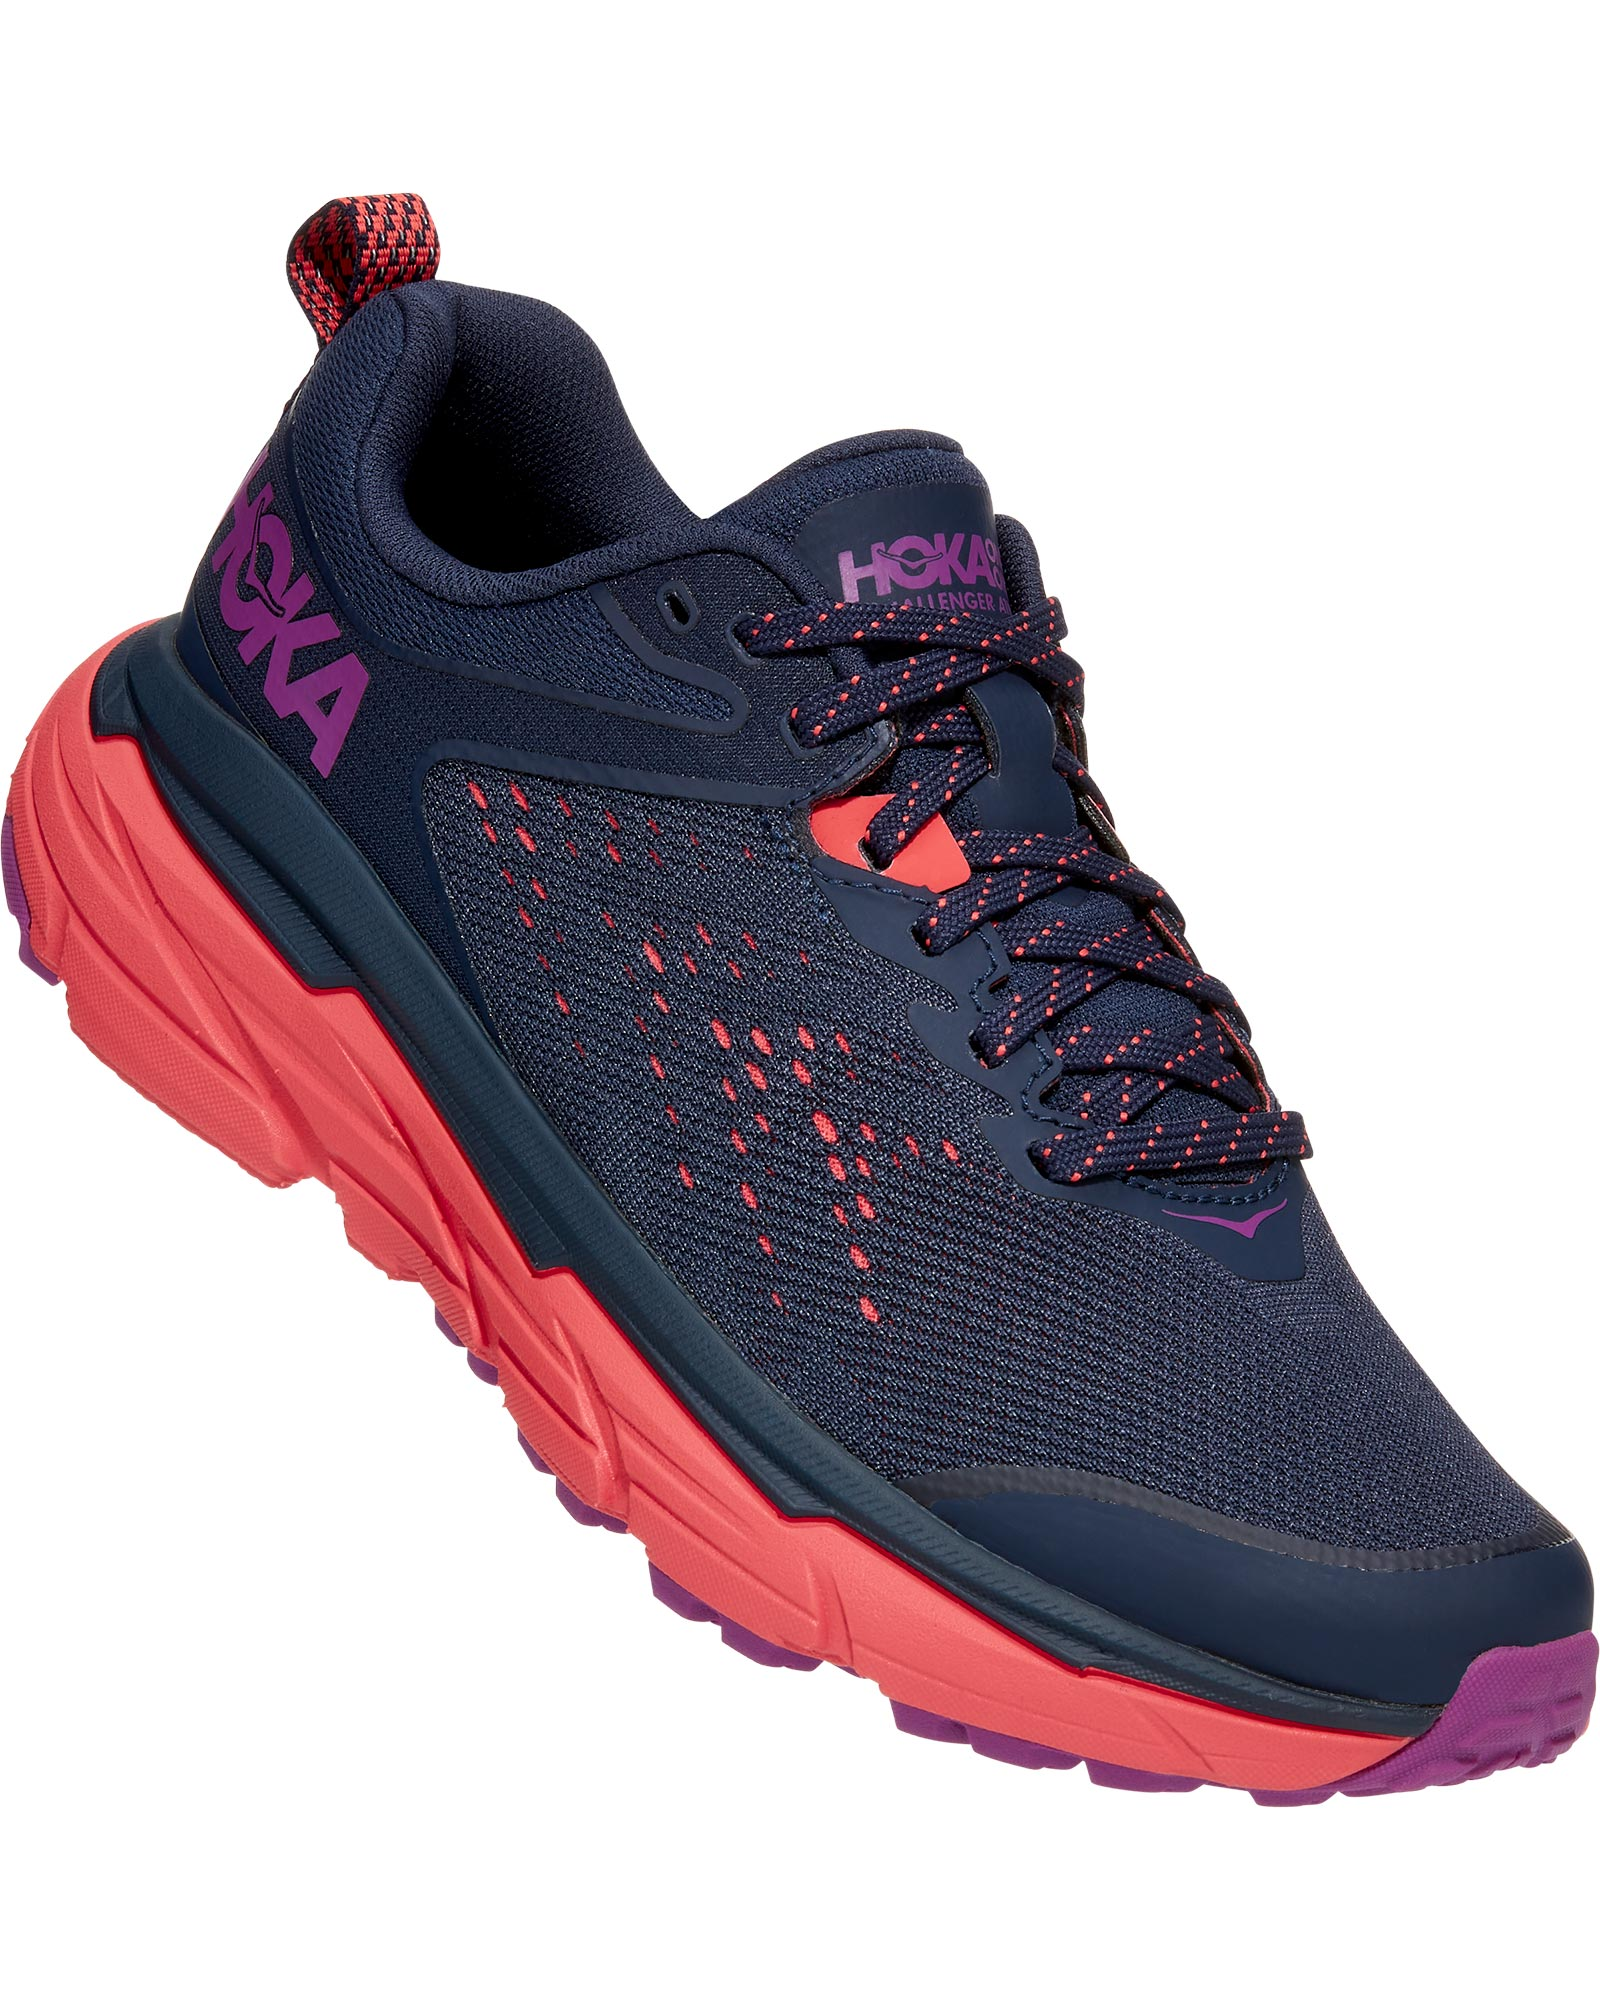 Hoka One One Challenger ATR 6 Women's Shoes 0